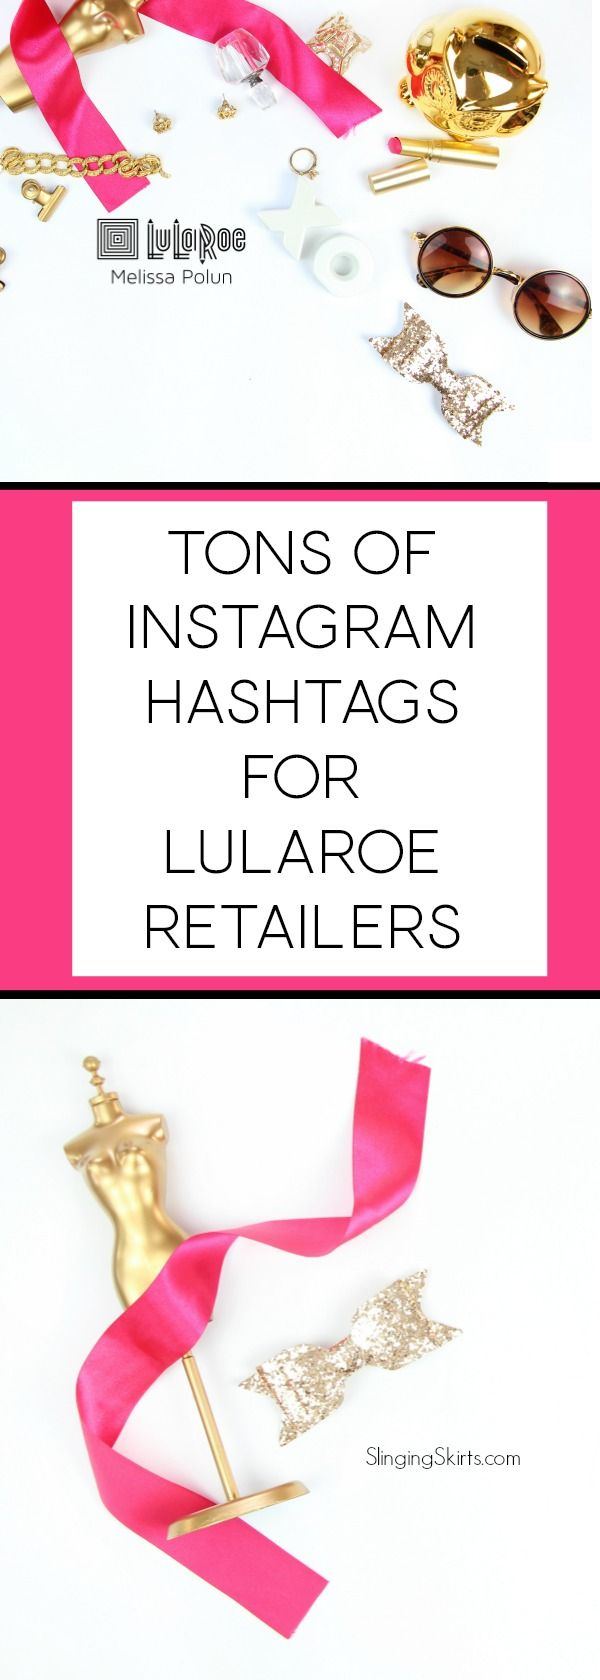 Tons of Instagram hashtags for LuLaRoe retailers